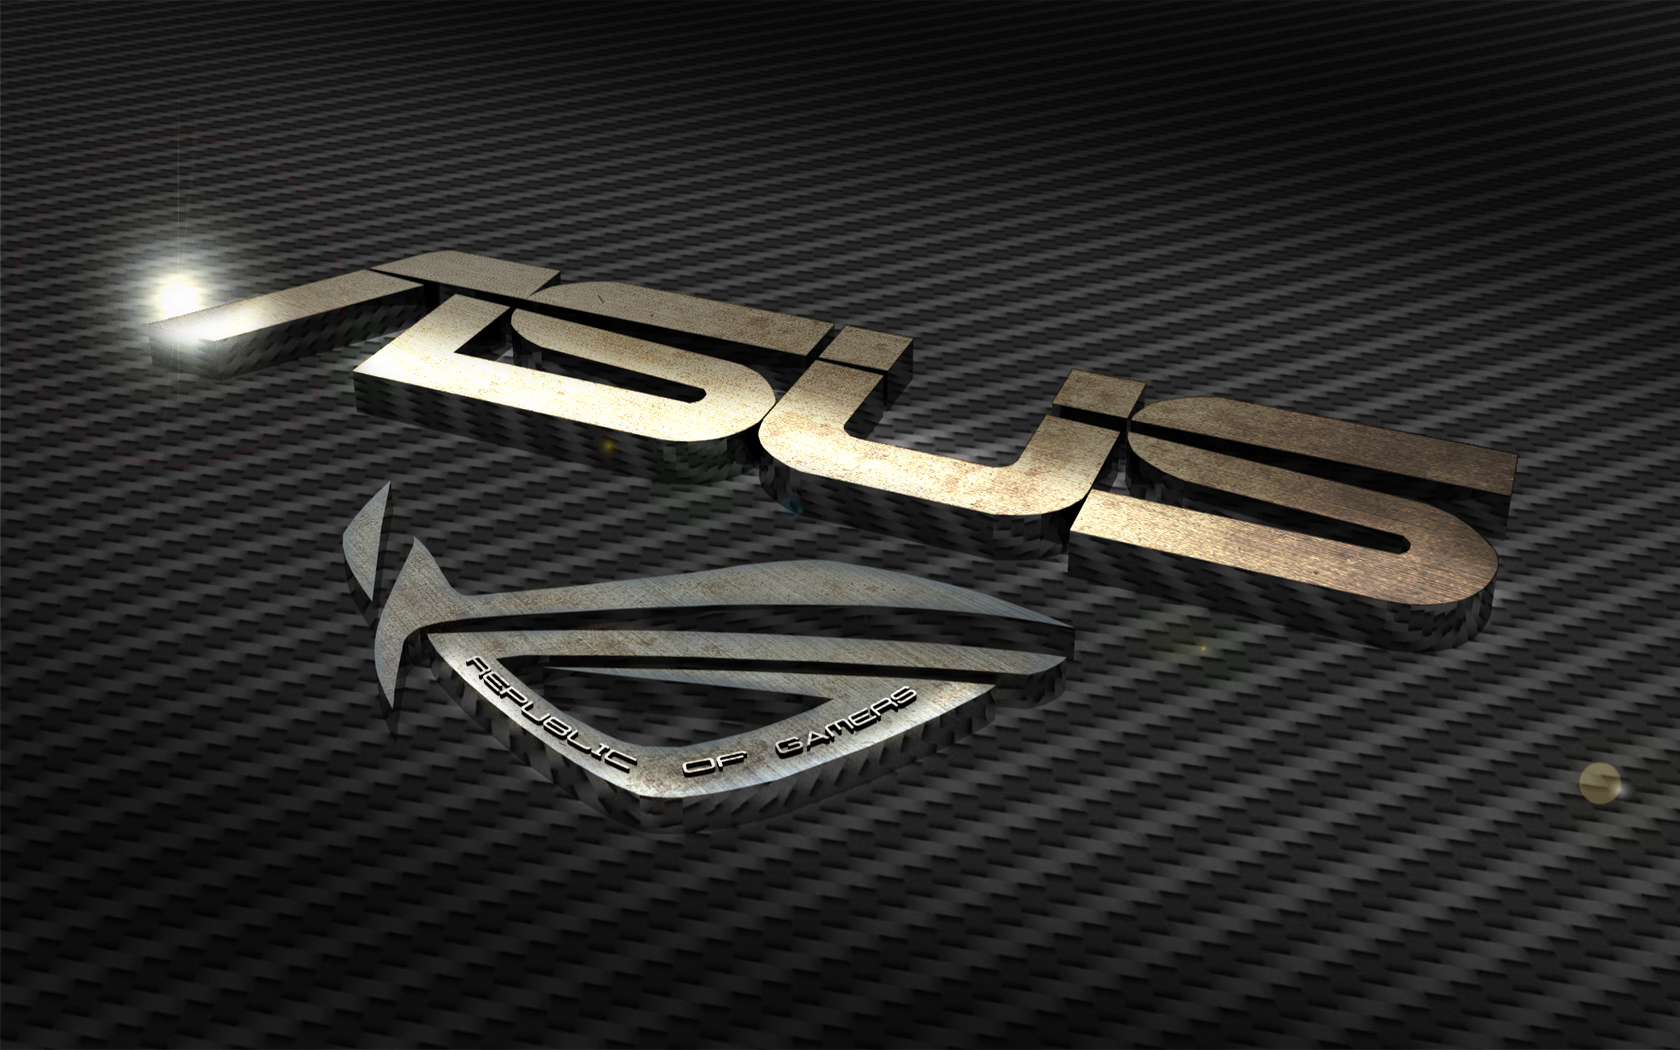 HQ Asus Wallpapers | File 752.14Kb